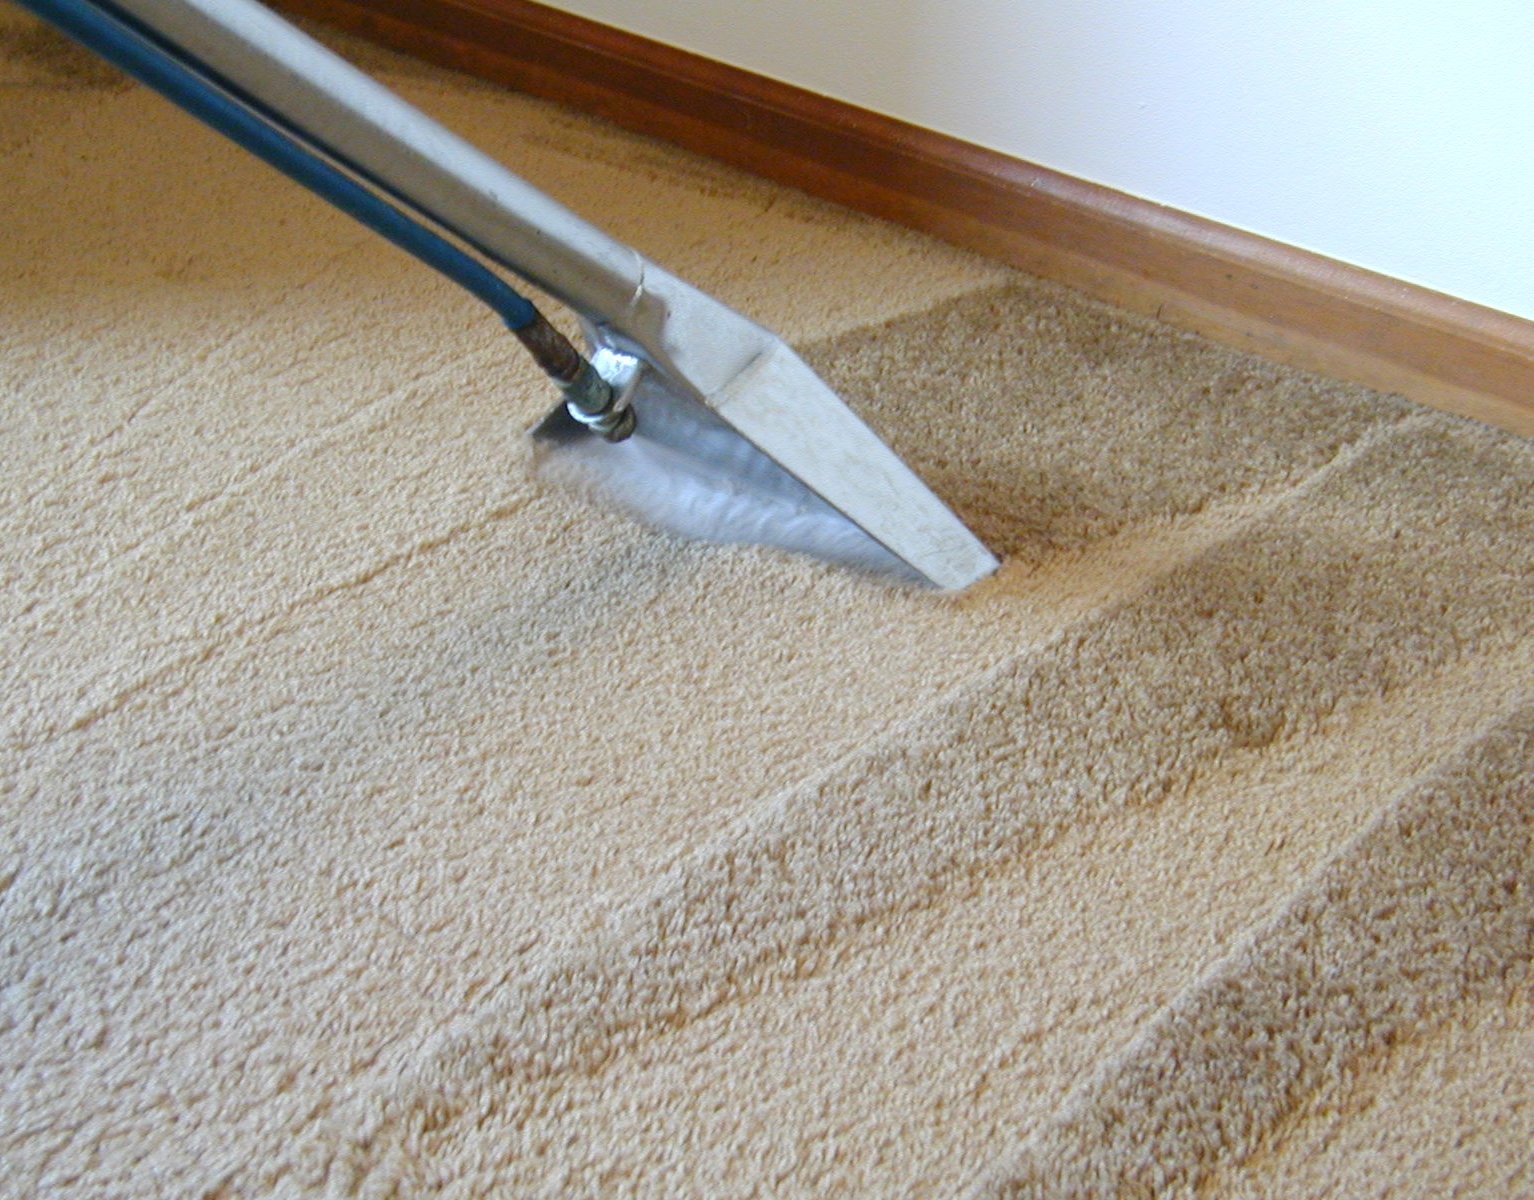 First Choice Carpet Cleaning - Using a carpet cleaner on tile floors